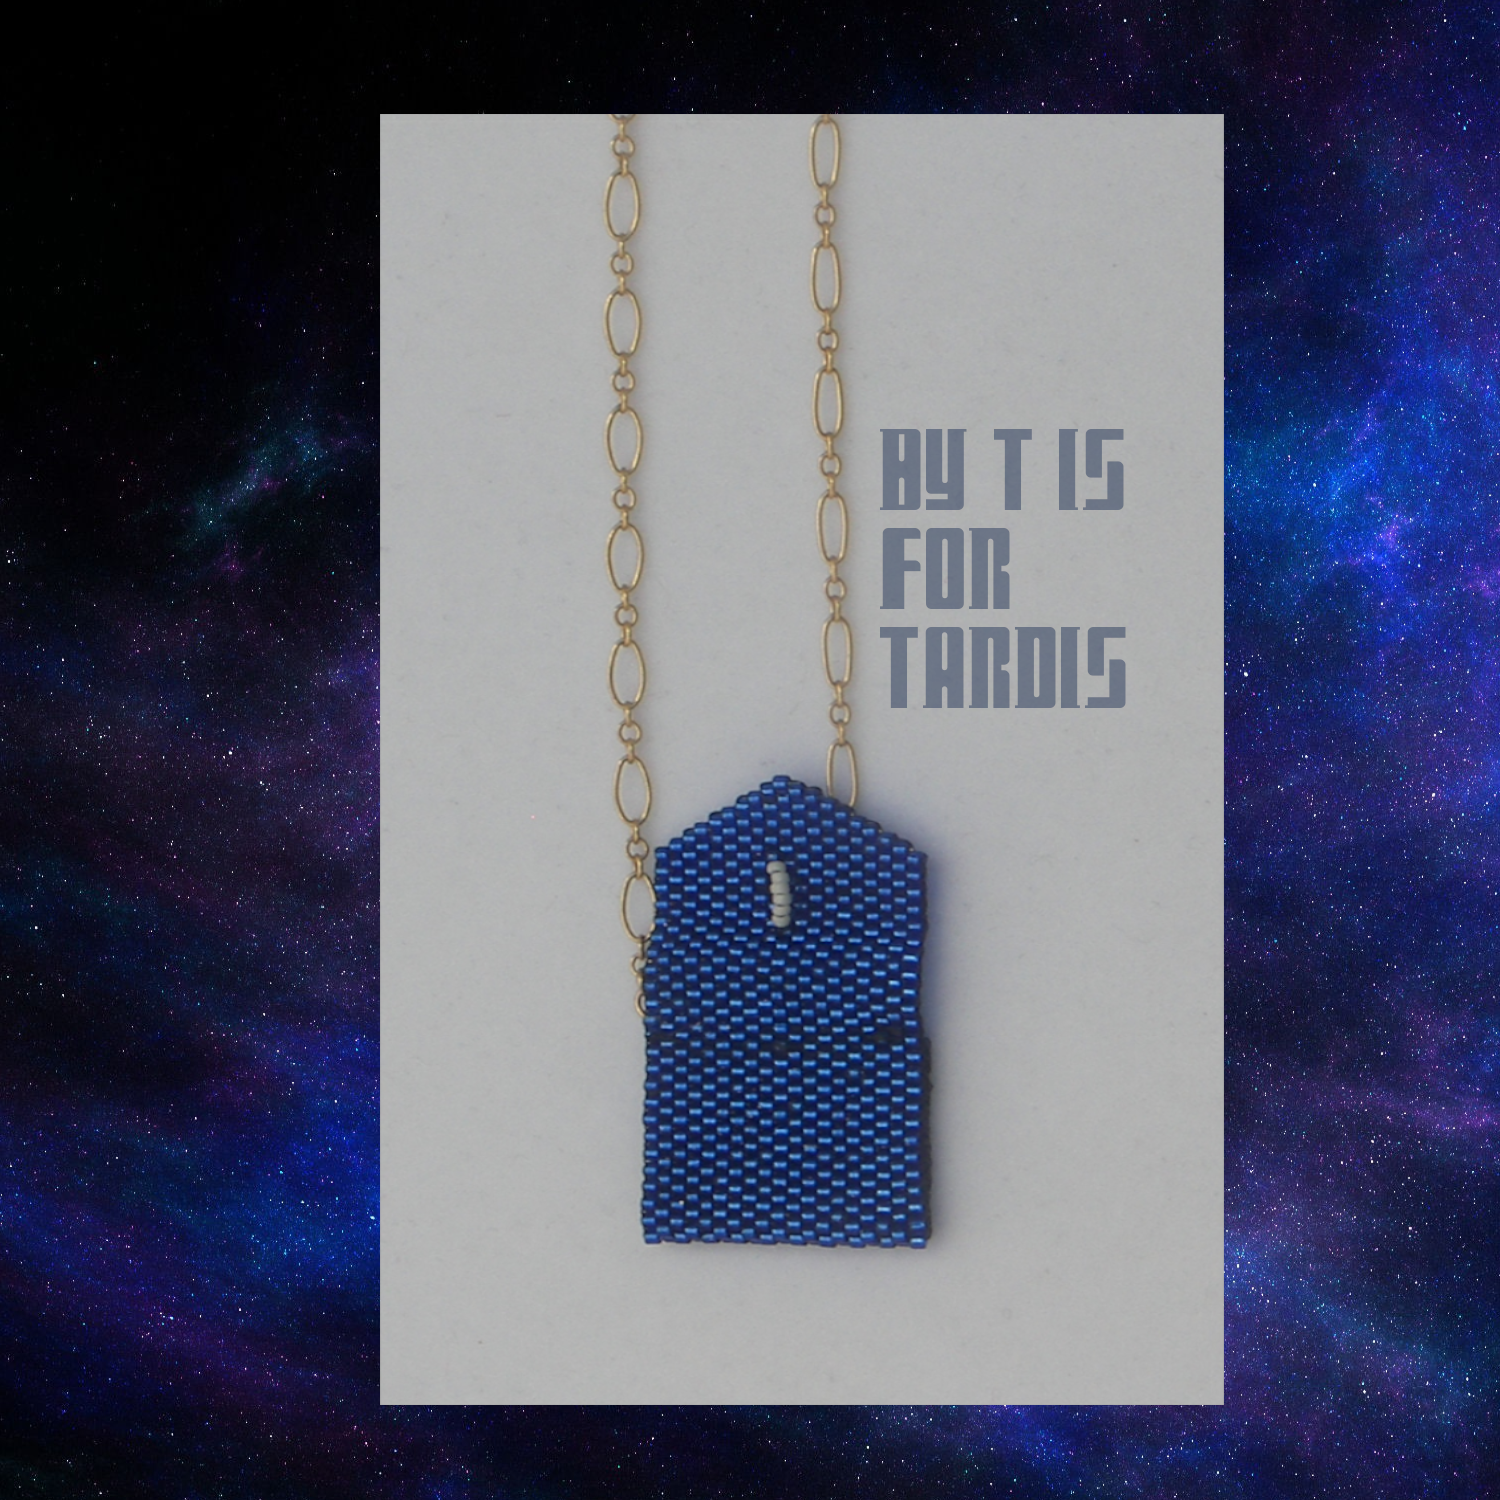 tardis envelope open on chain outside by KC Dragonfly